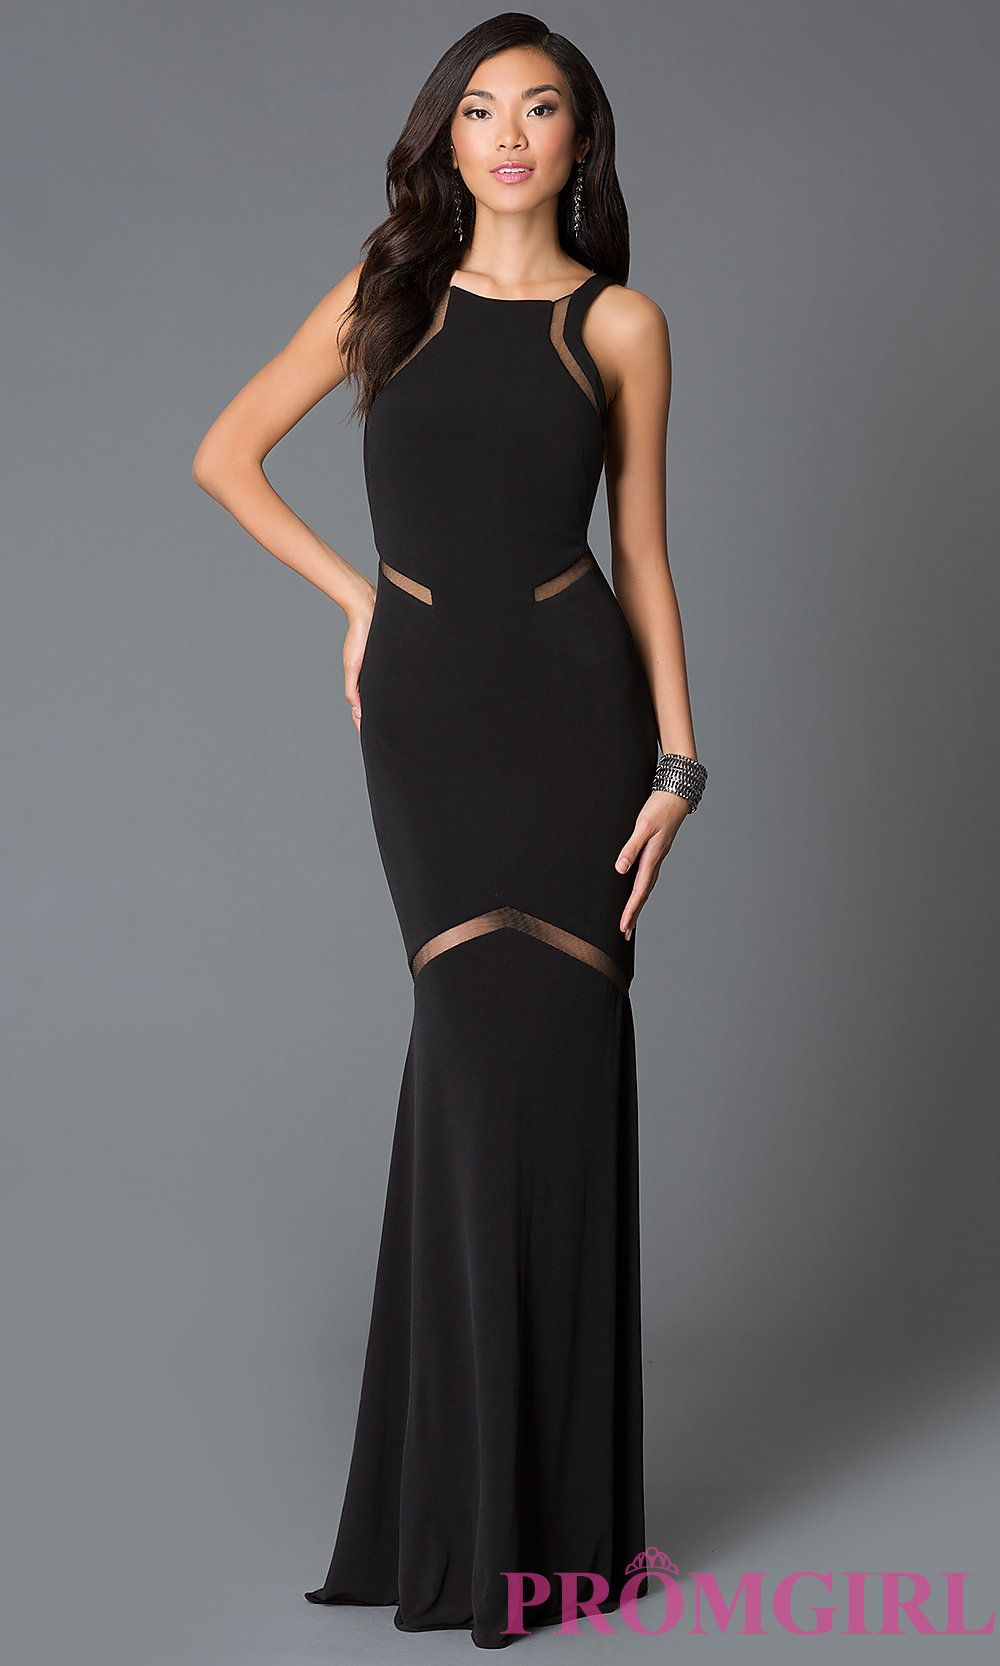 Swatchattribute my style pinterest prom gowns and